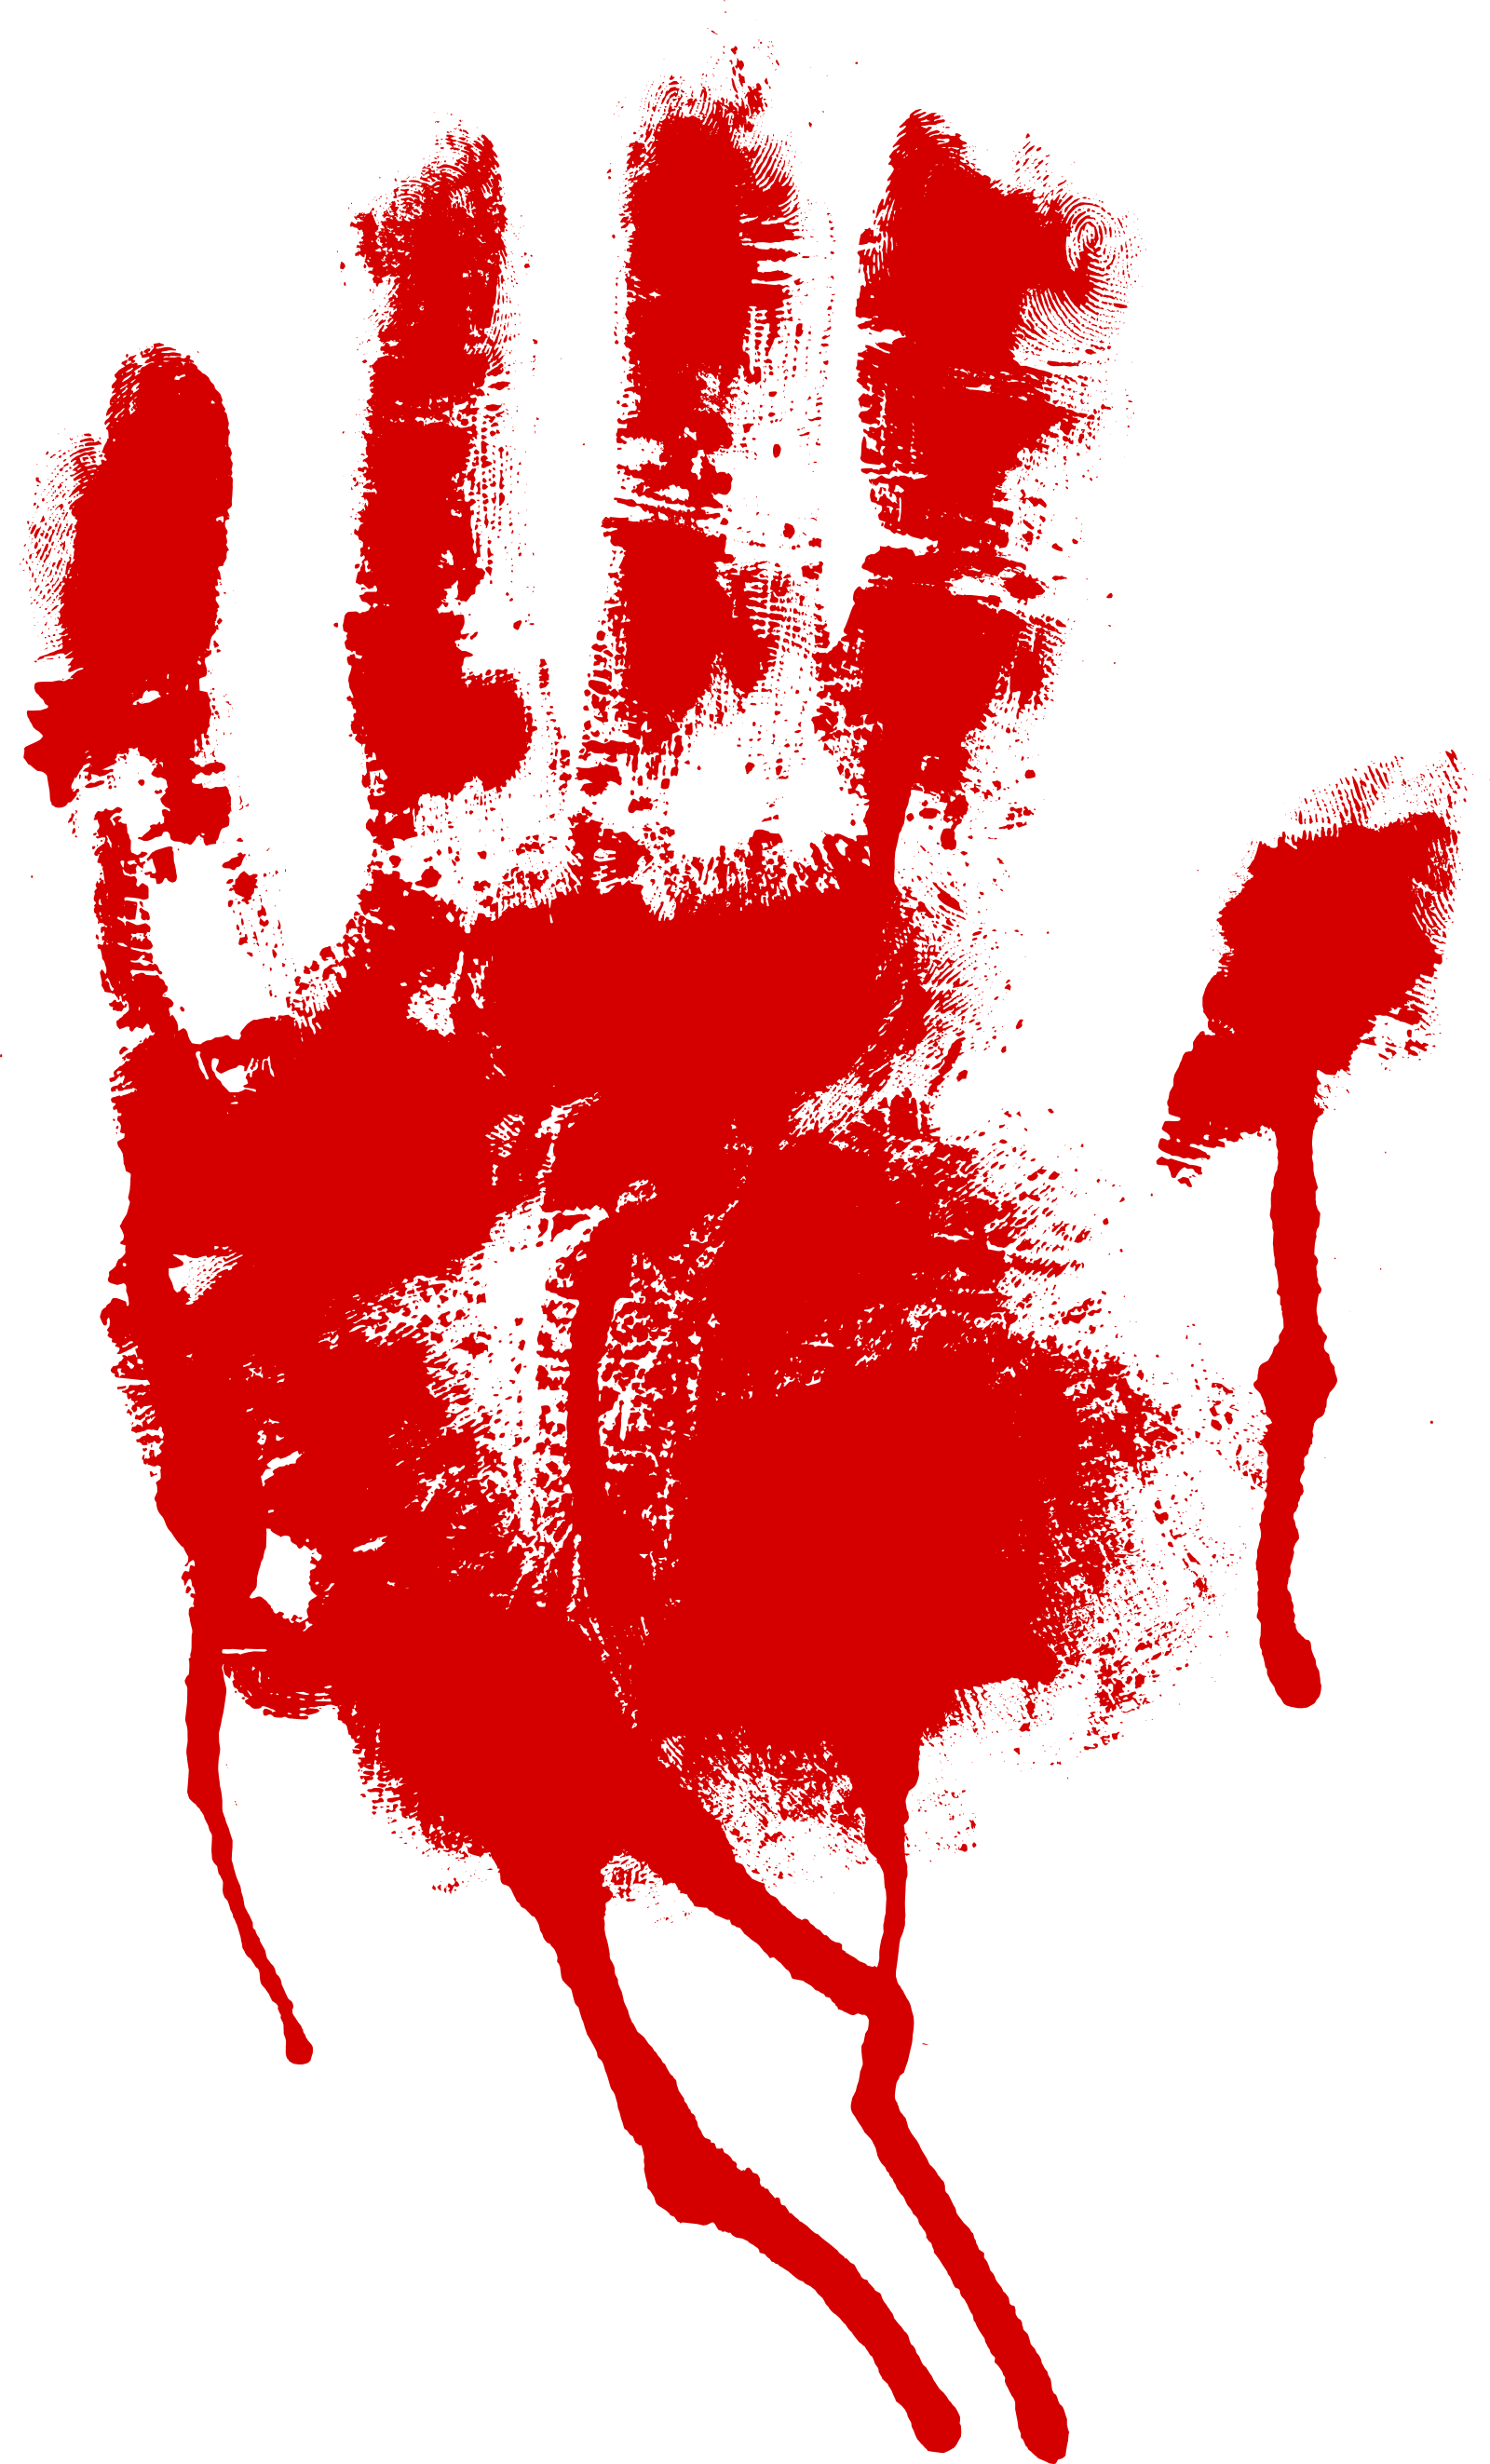 Bloody hand print png. Handprint transparent red jpg royalty free library